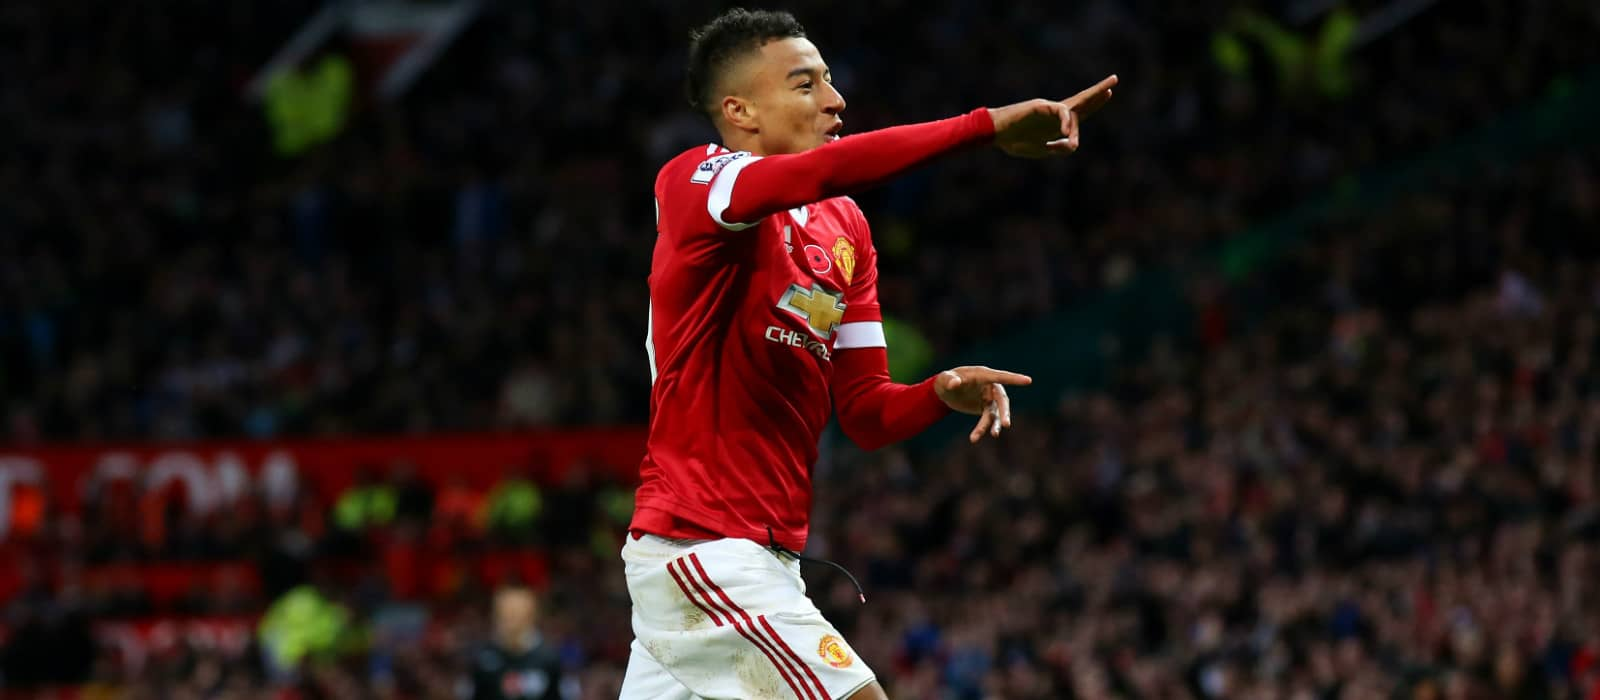 Manchester United fans delighted with Jesse Lingard's display against Middlesbrough